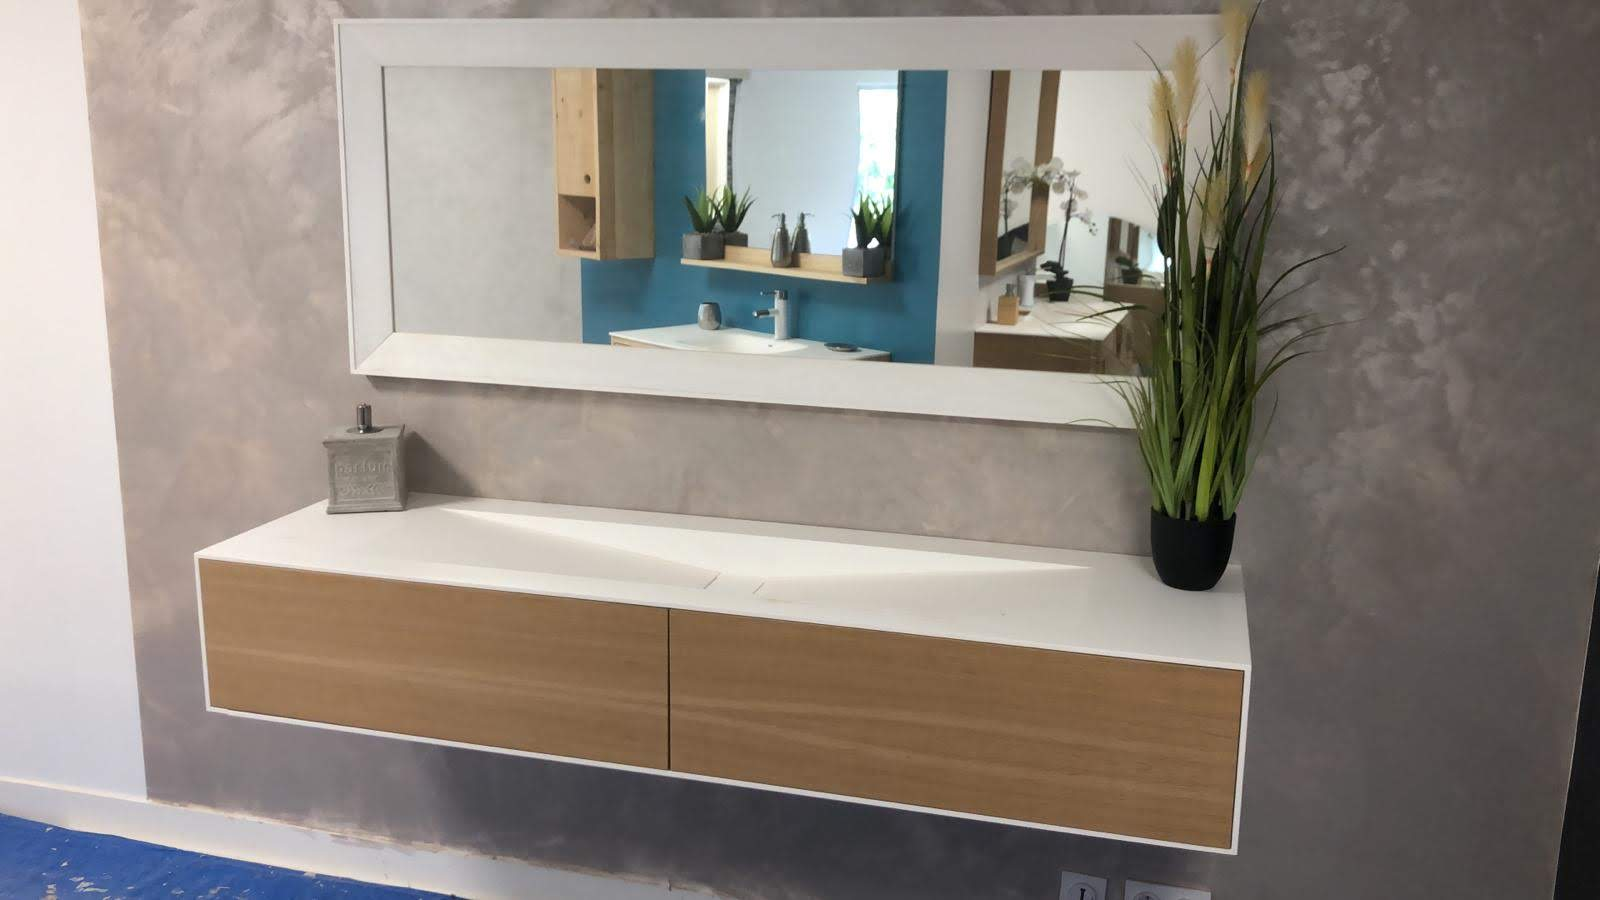 mueble-suite-baño-corian-betacryl-frontales-roble-2